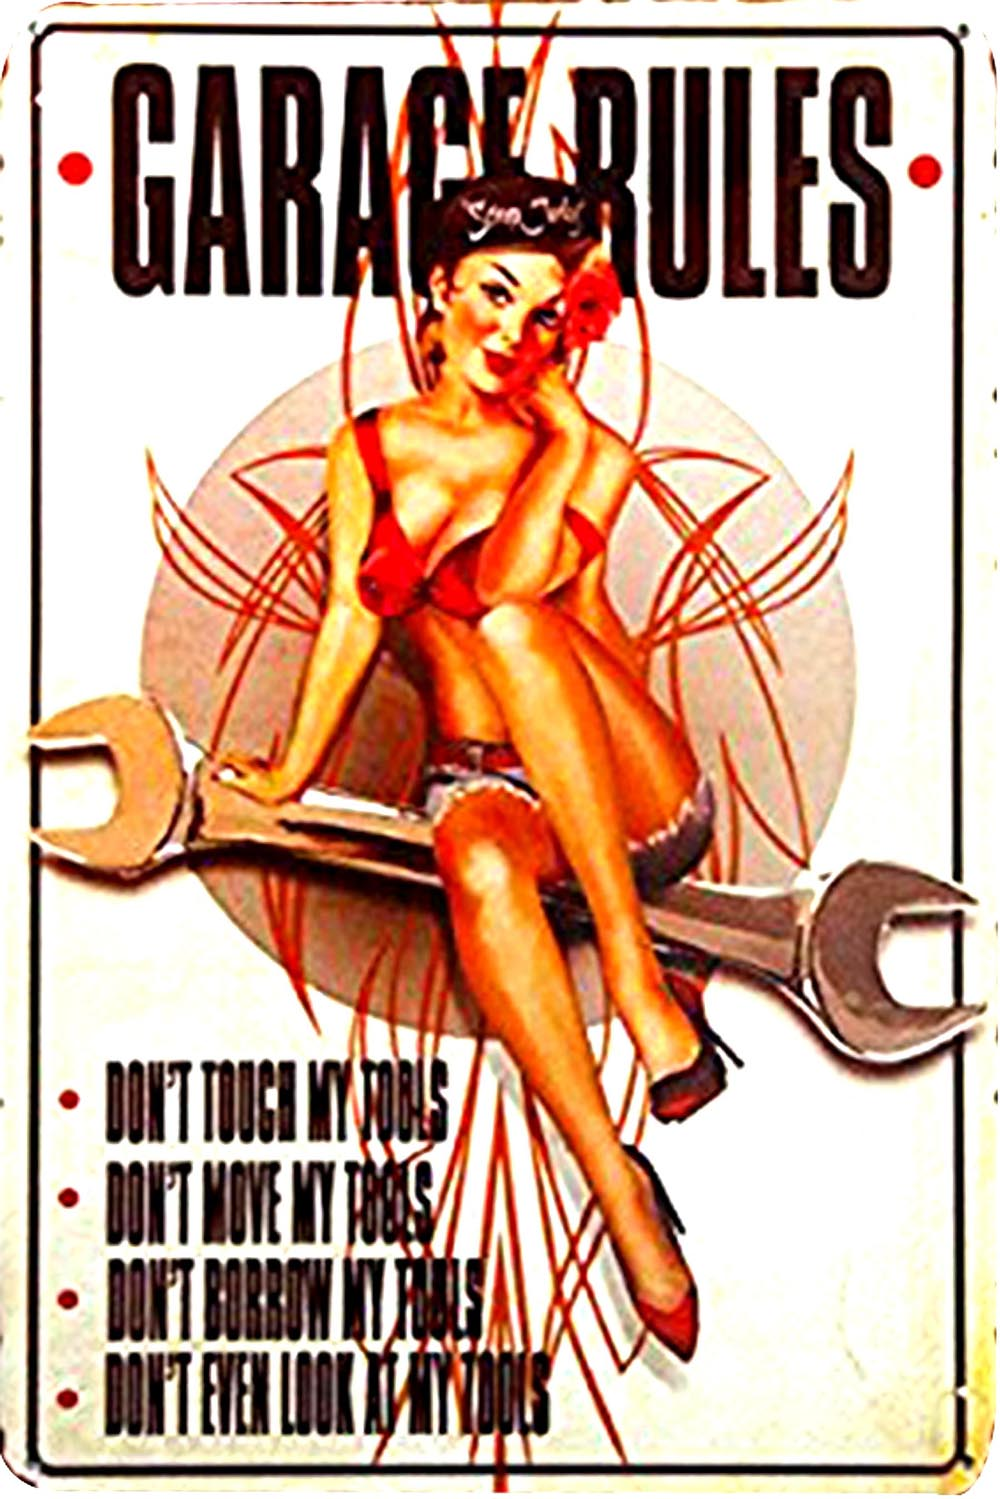 garage rules wrench pin-up girl tin metal sign 0382a